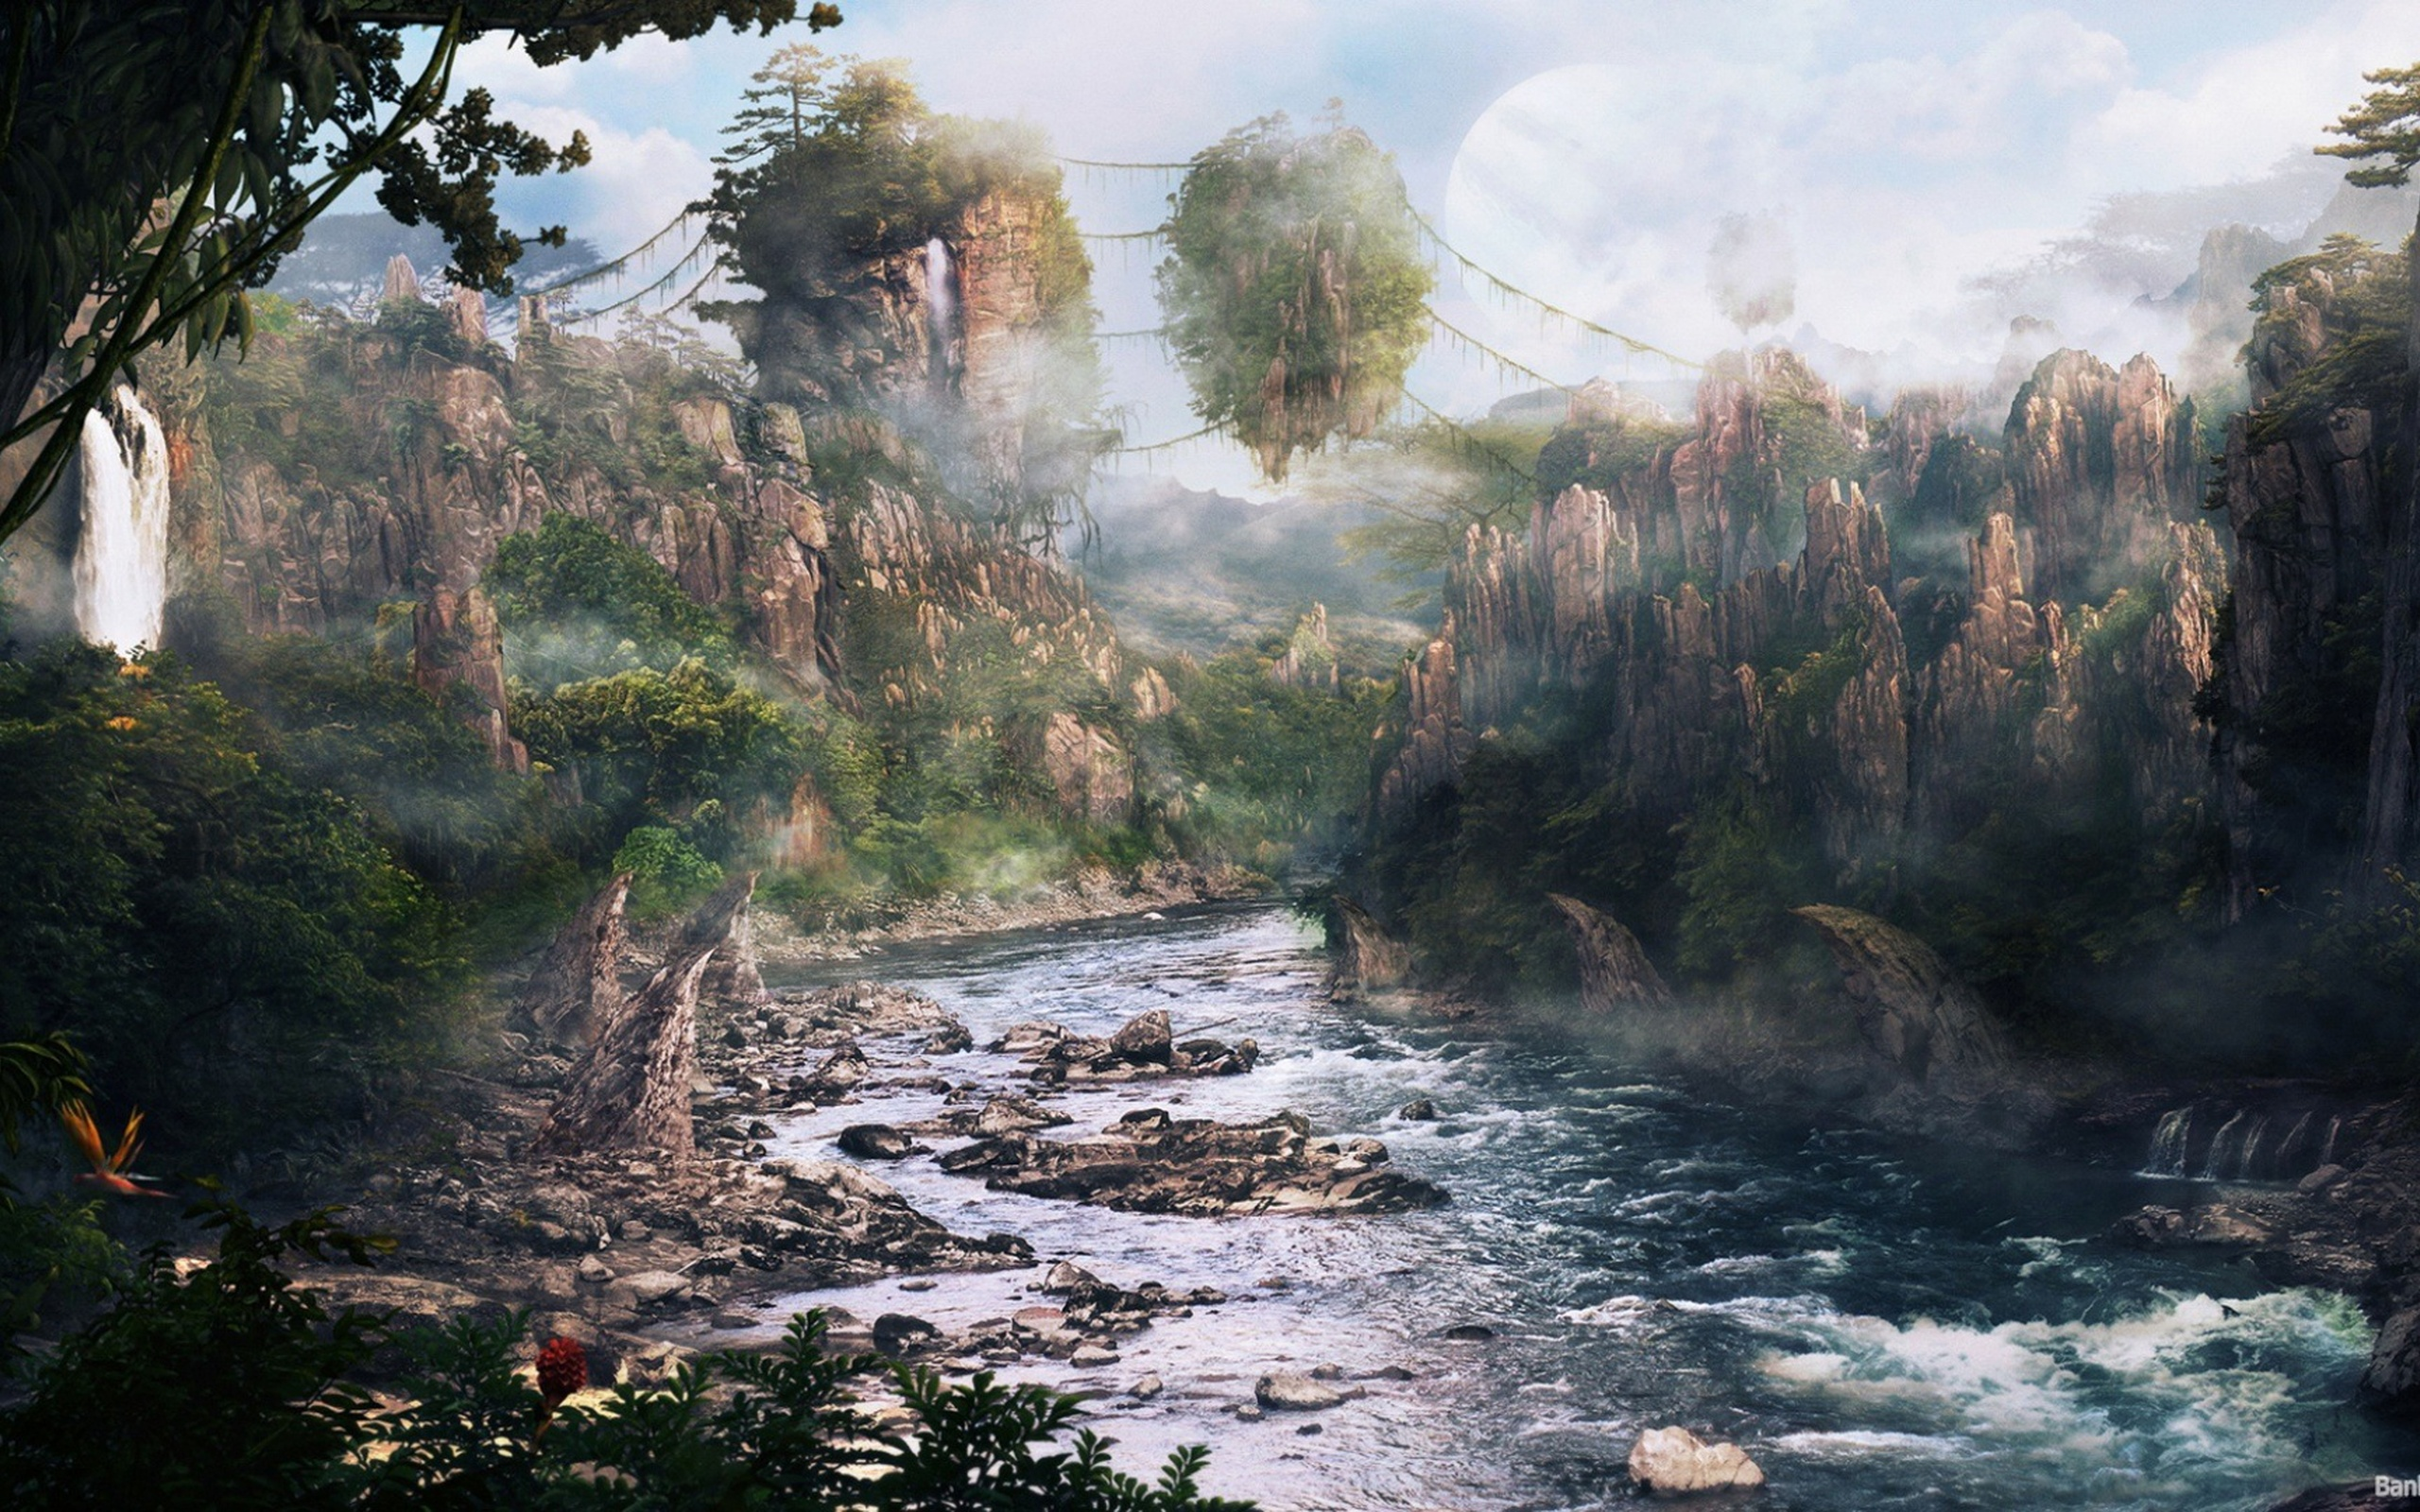 http://james-camerons-avatar.wikia.com/wiki/File:Concept_art_of ...: wall.alphacoders.com/big.php?i=305305&lang=German